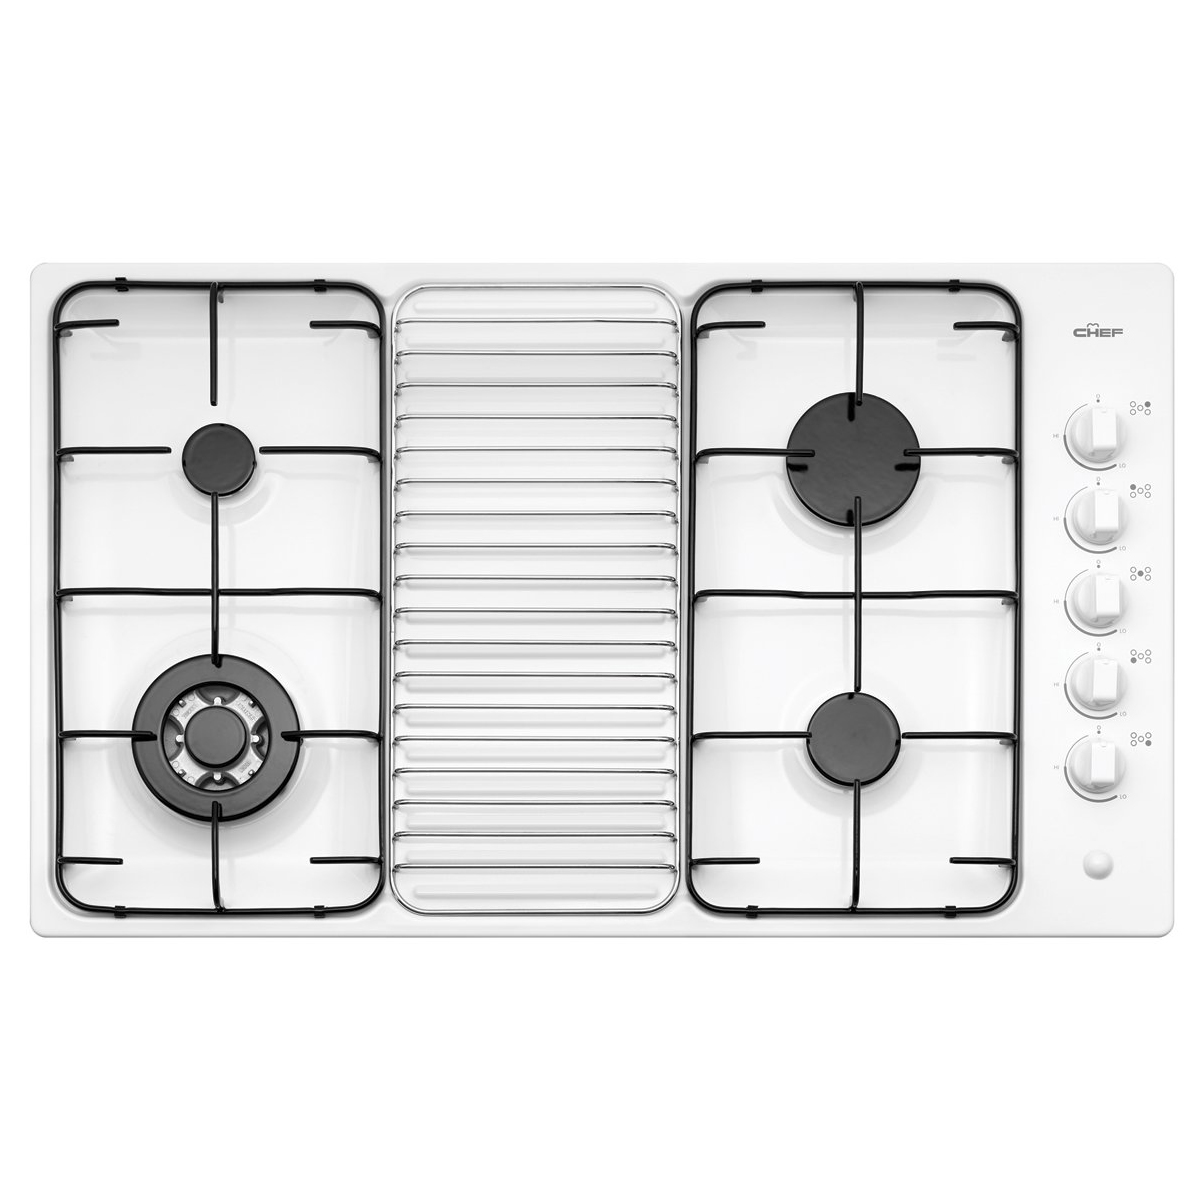 Chef GHS917W Gas Cooktop